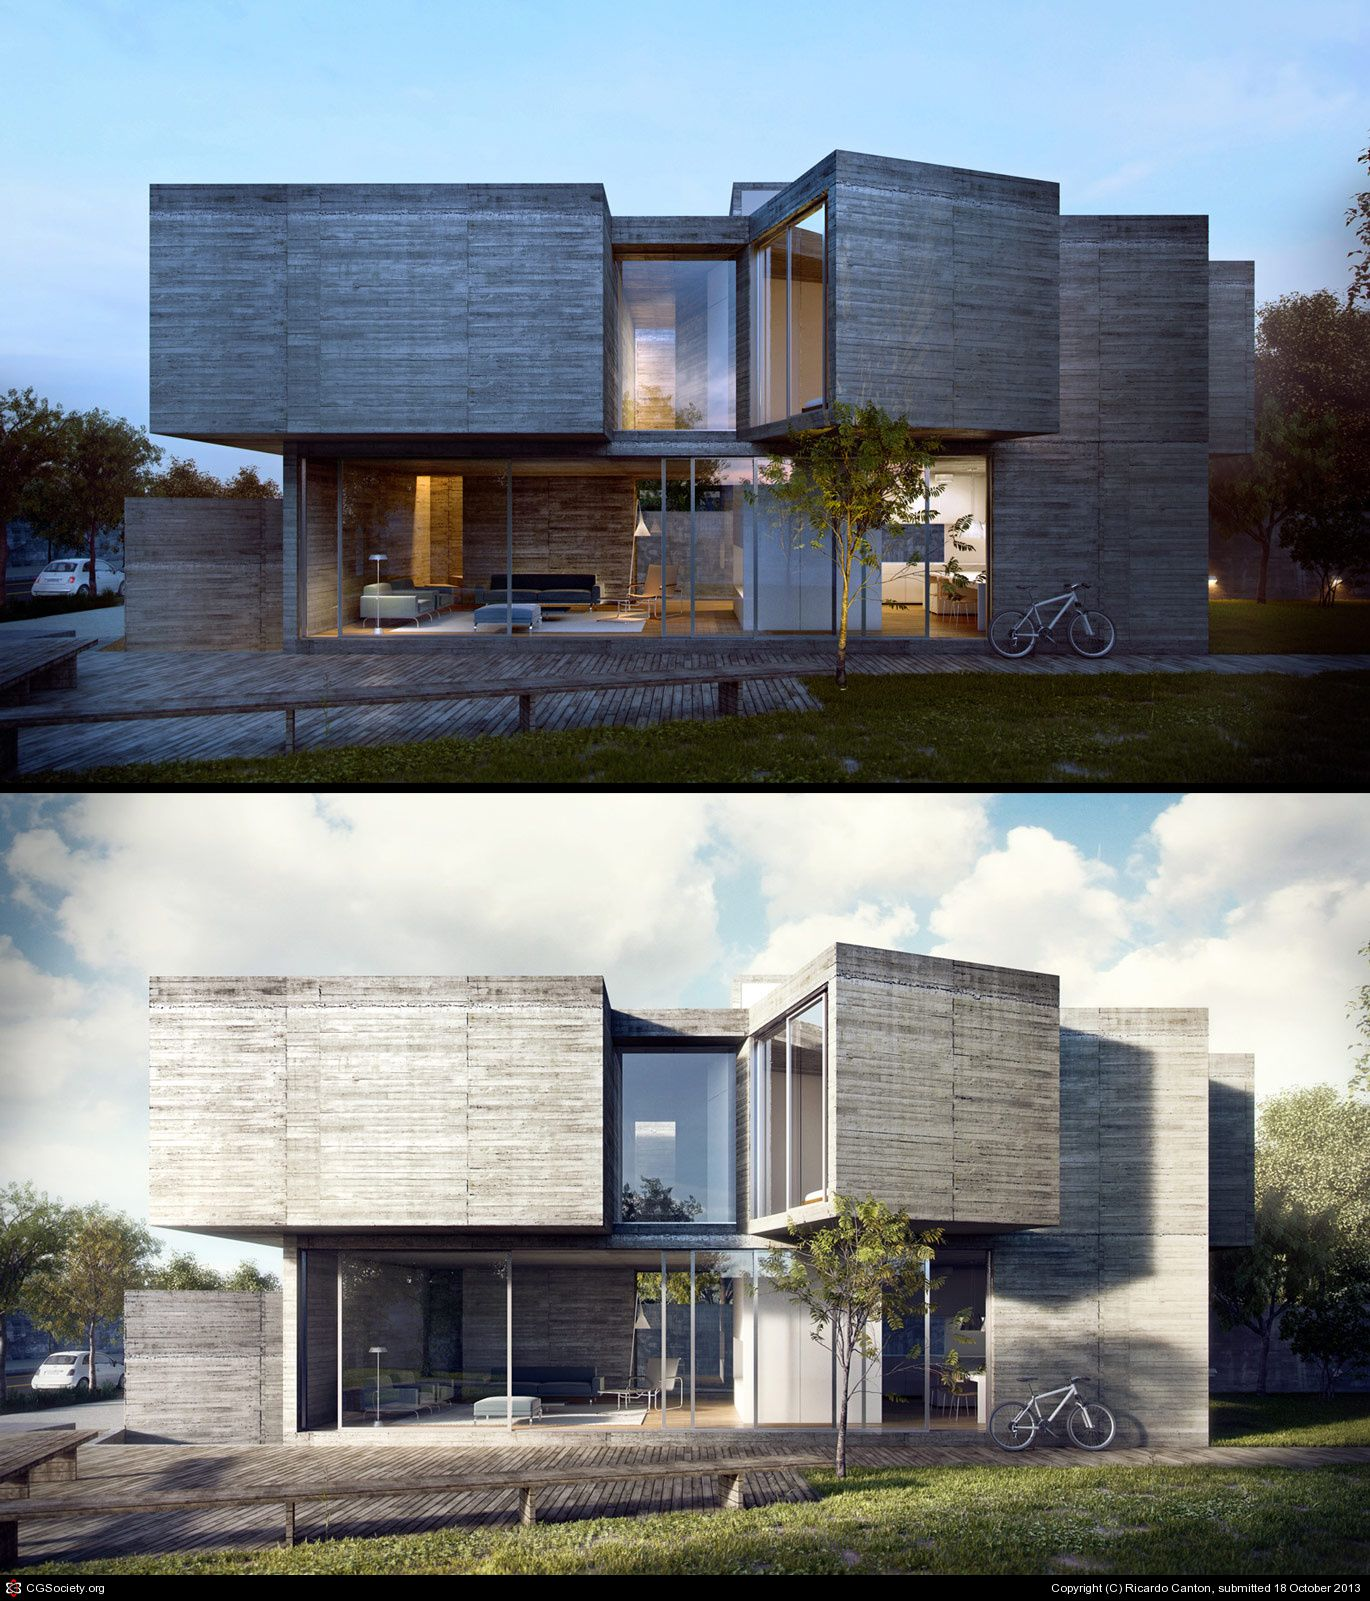 Architektur Rendering Photoshop Vivienda Render Render Night Architektur Visualisierung Haus